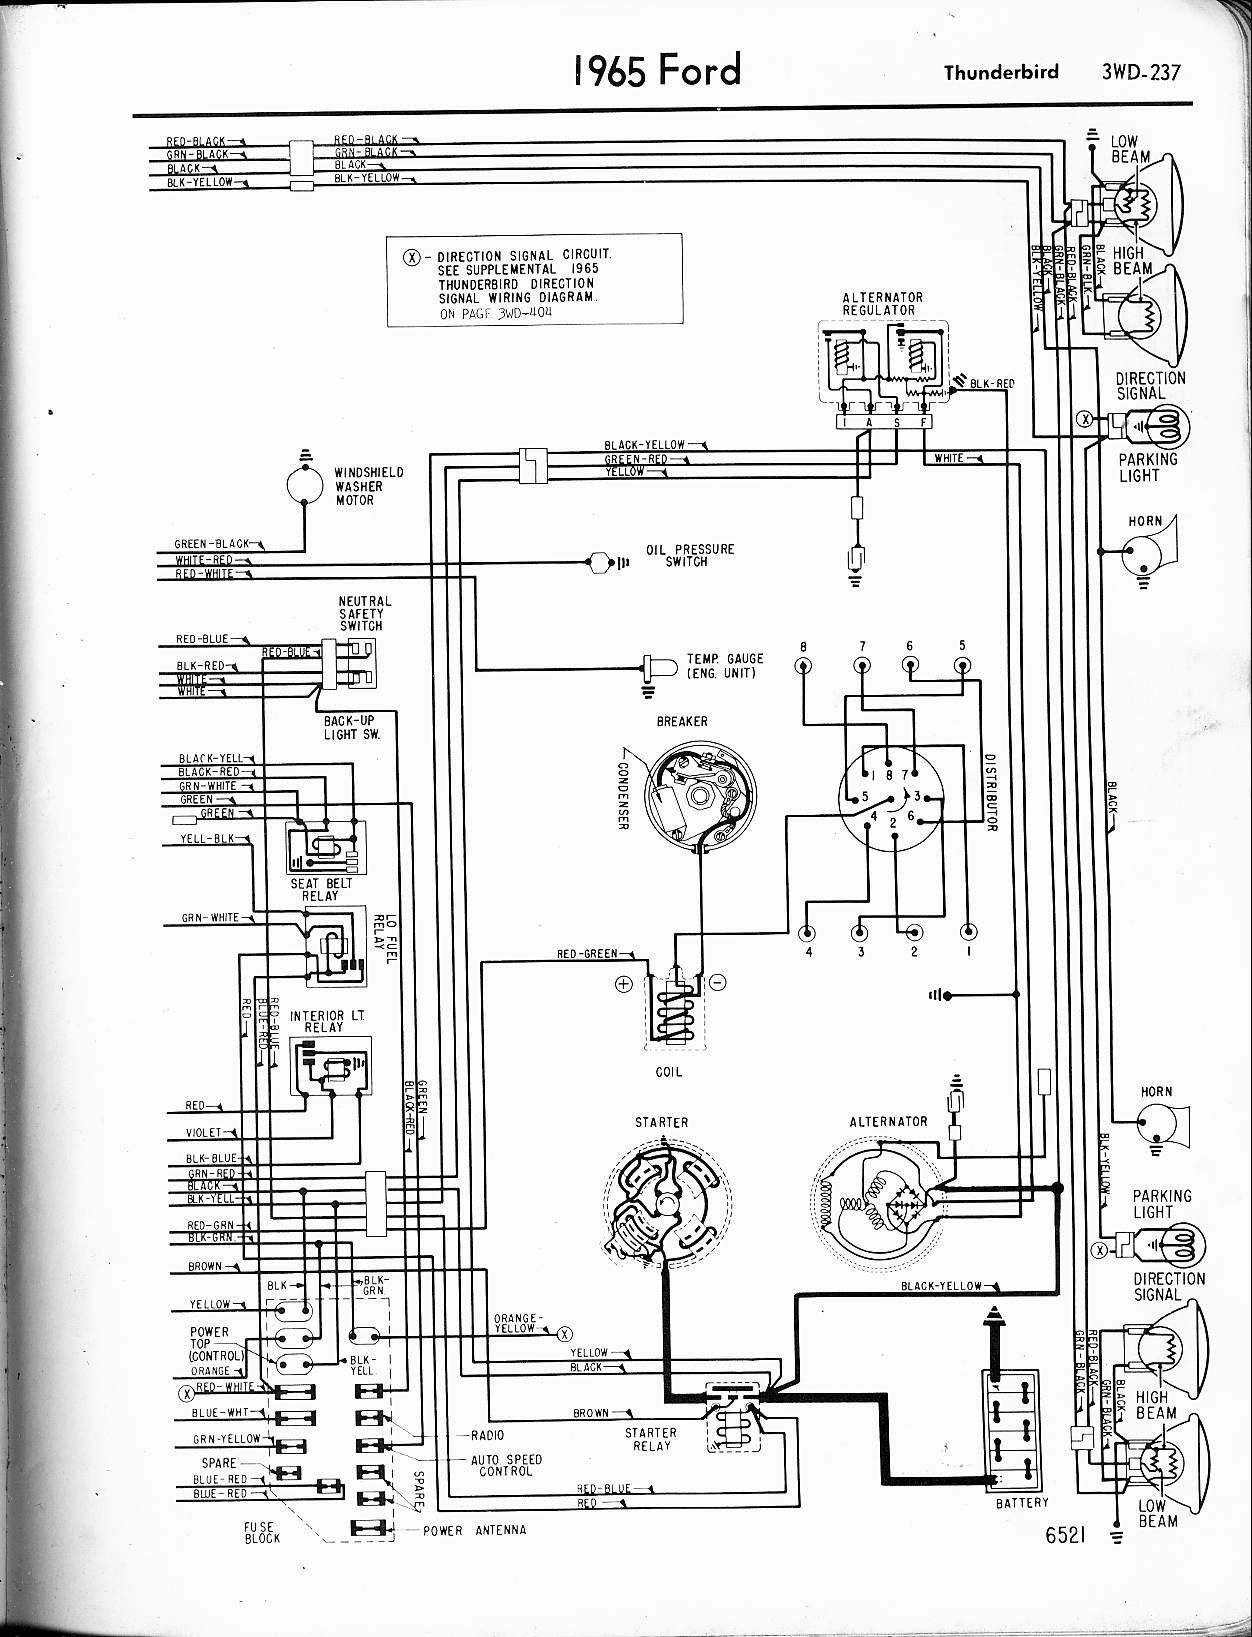 new need wiring diagram #diagram #wiringdiagram #diagramming #diagramm  #visuals #visualisation #graphical | diagram, alternator, ford  pinterest